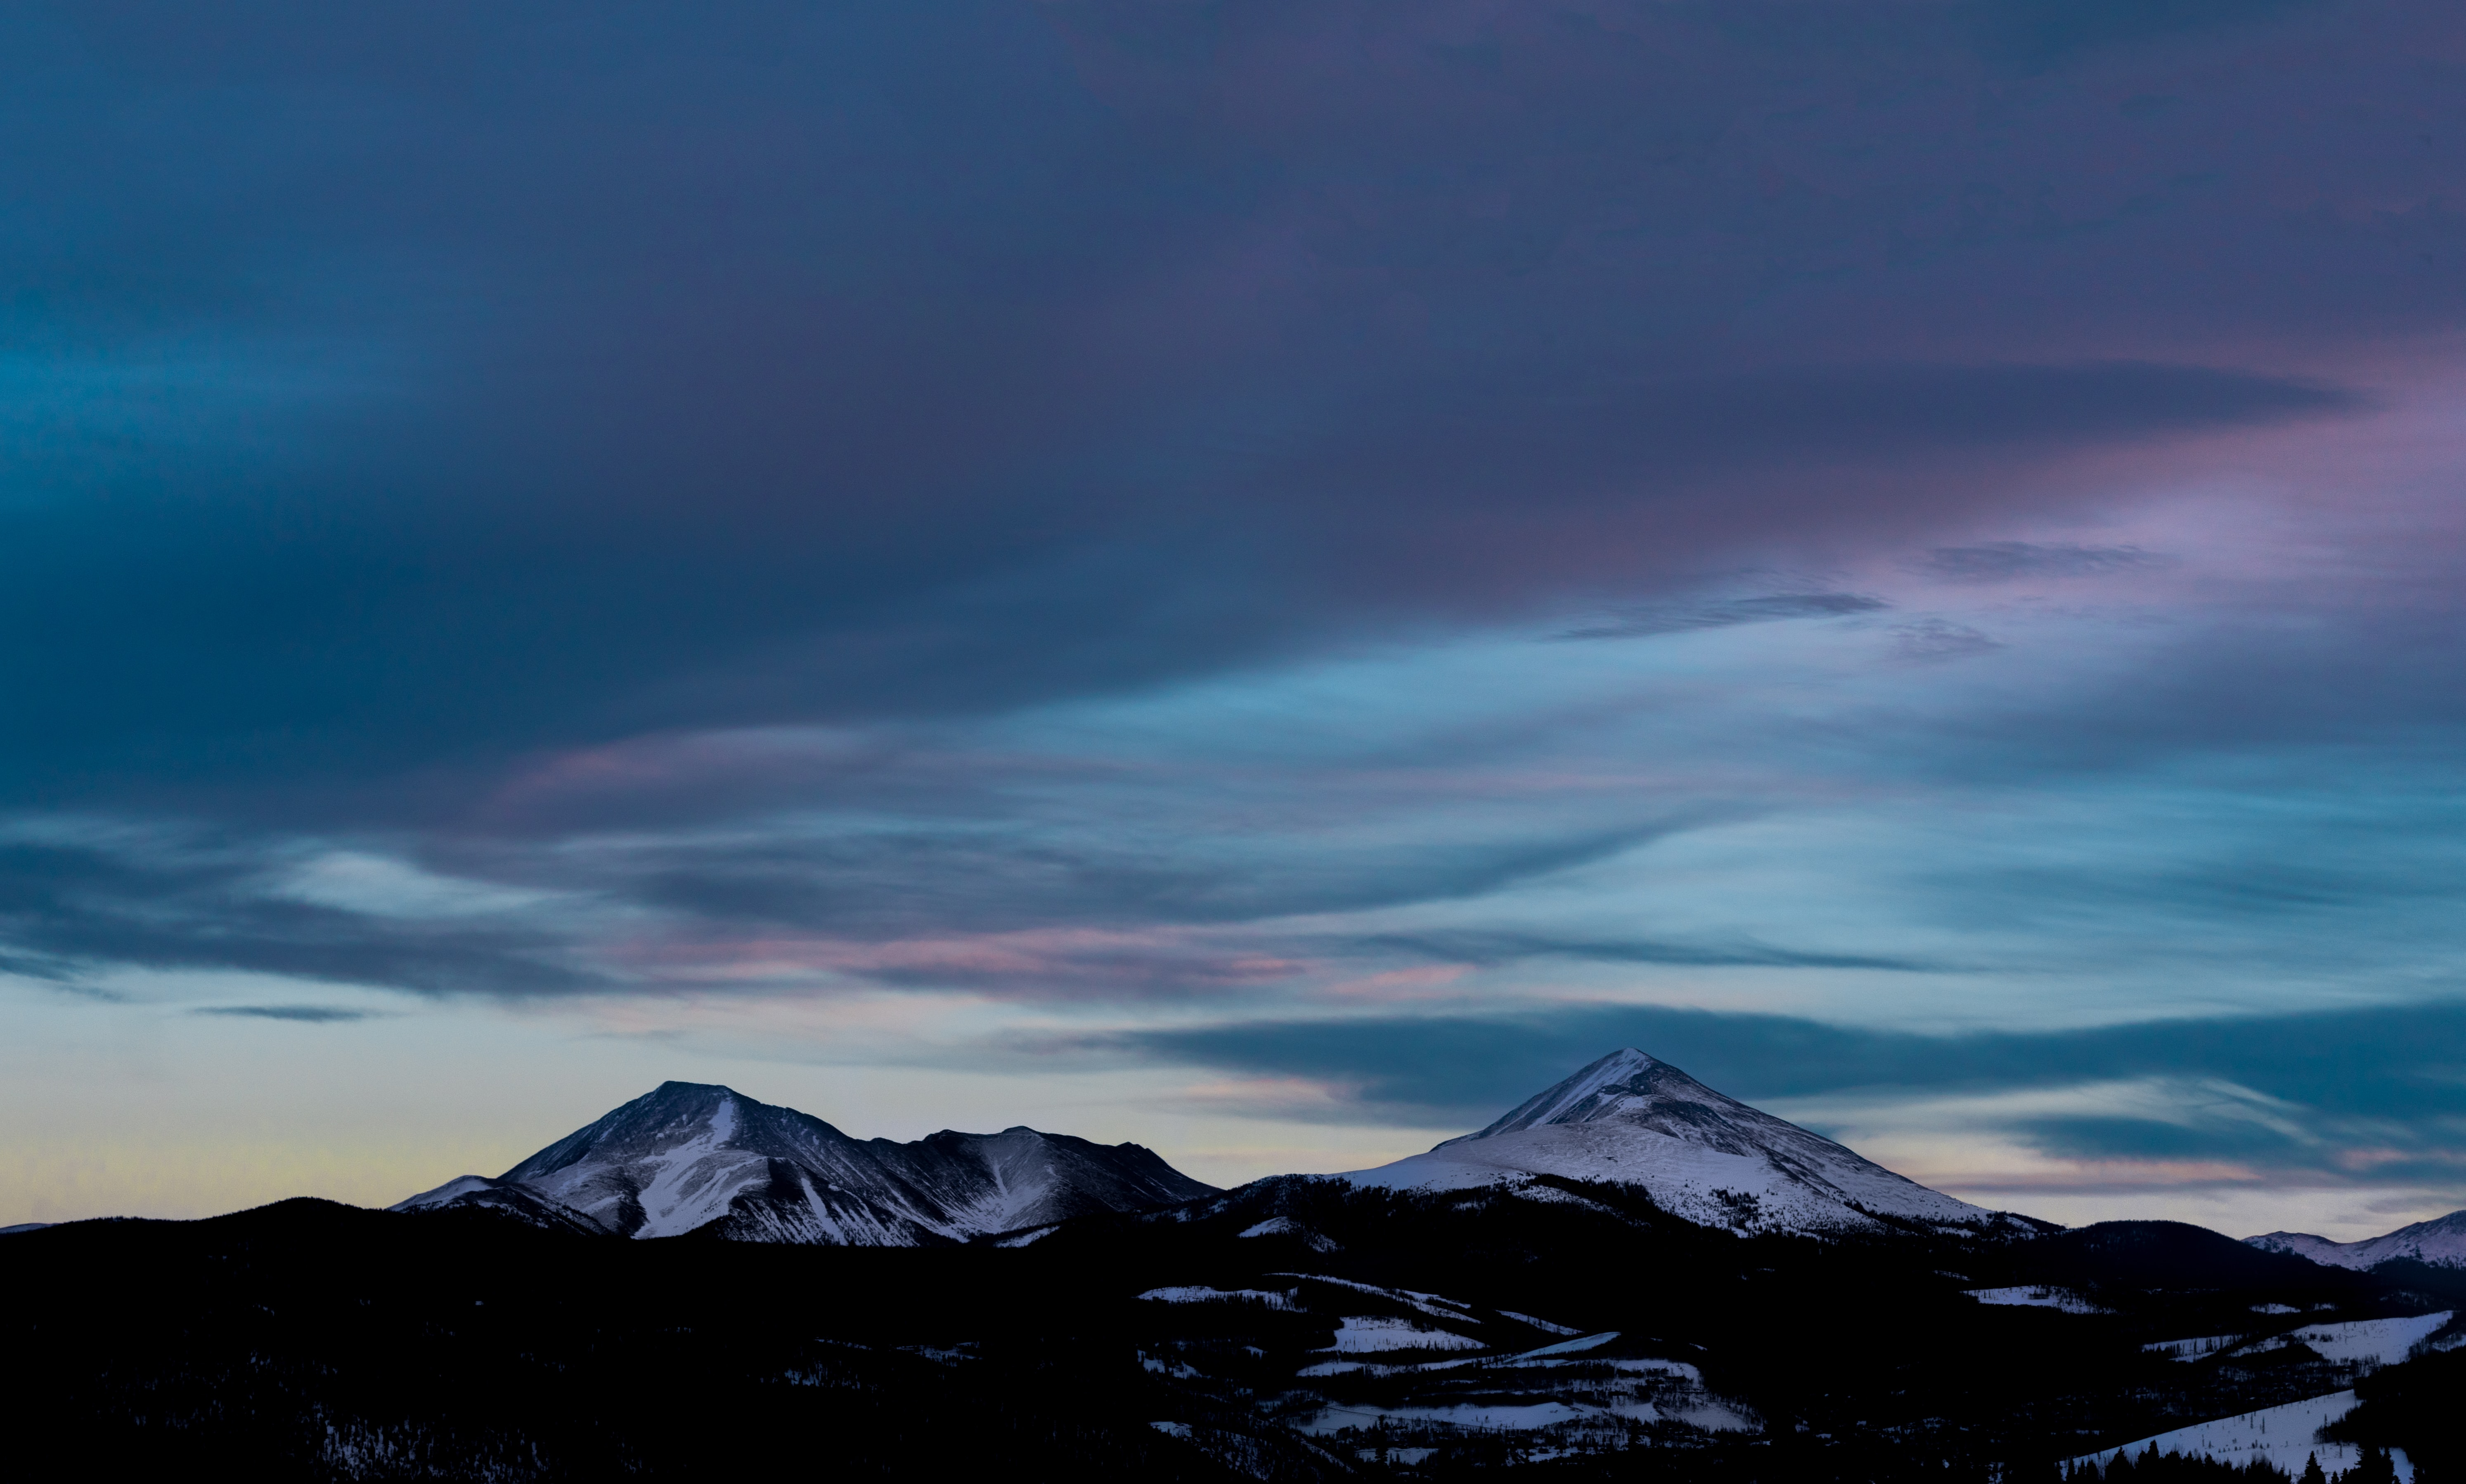 A mountain peak rising up against the cloudy evening sky in Silverthorne